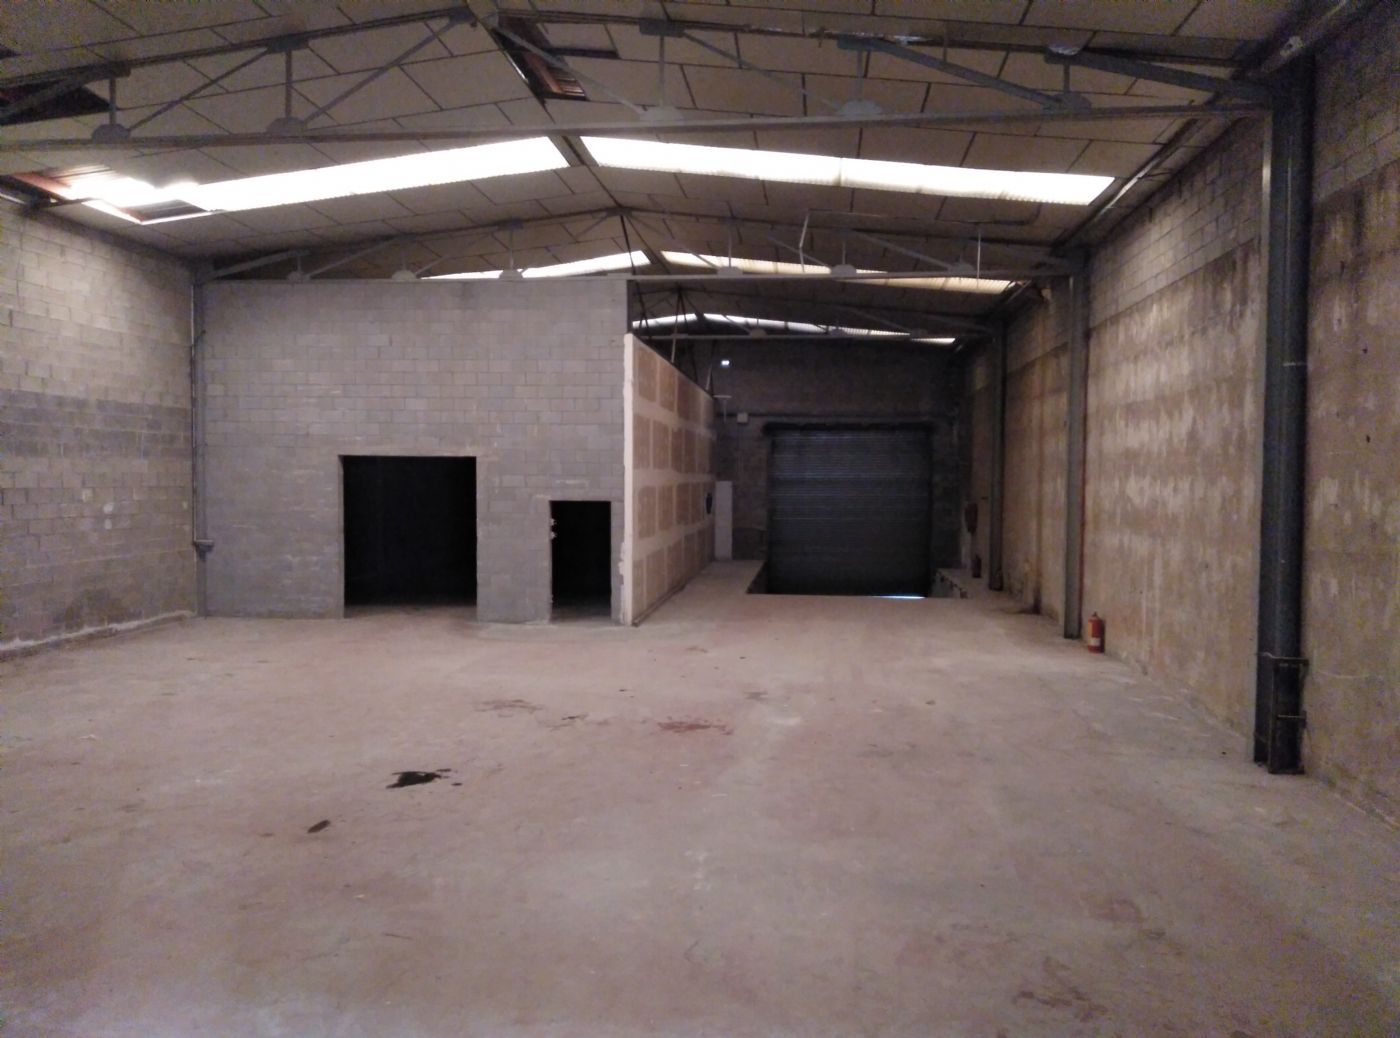 Rent Industrial building  Centre. Nave industrial